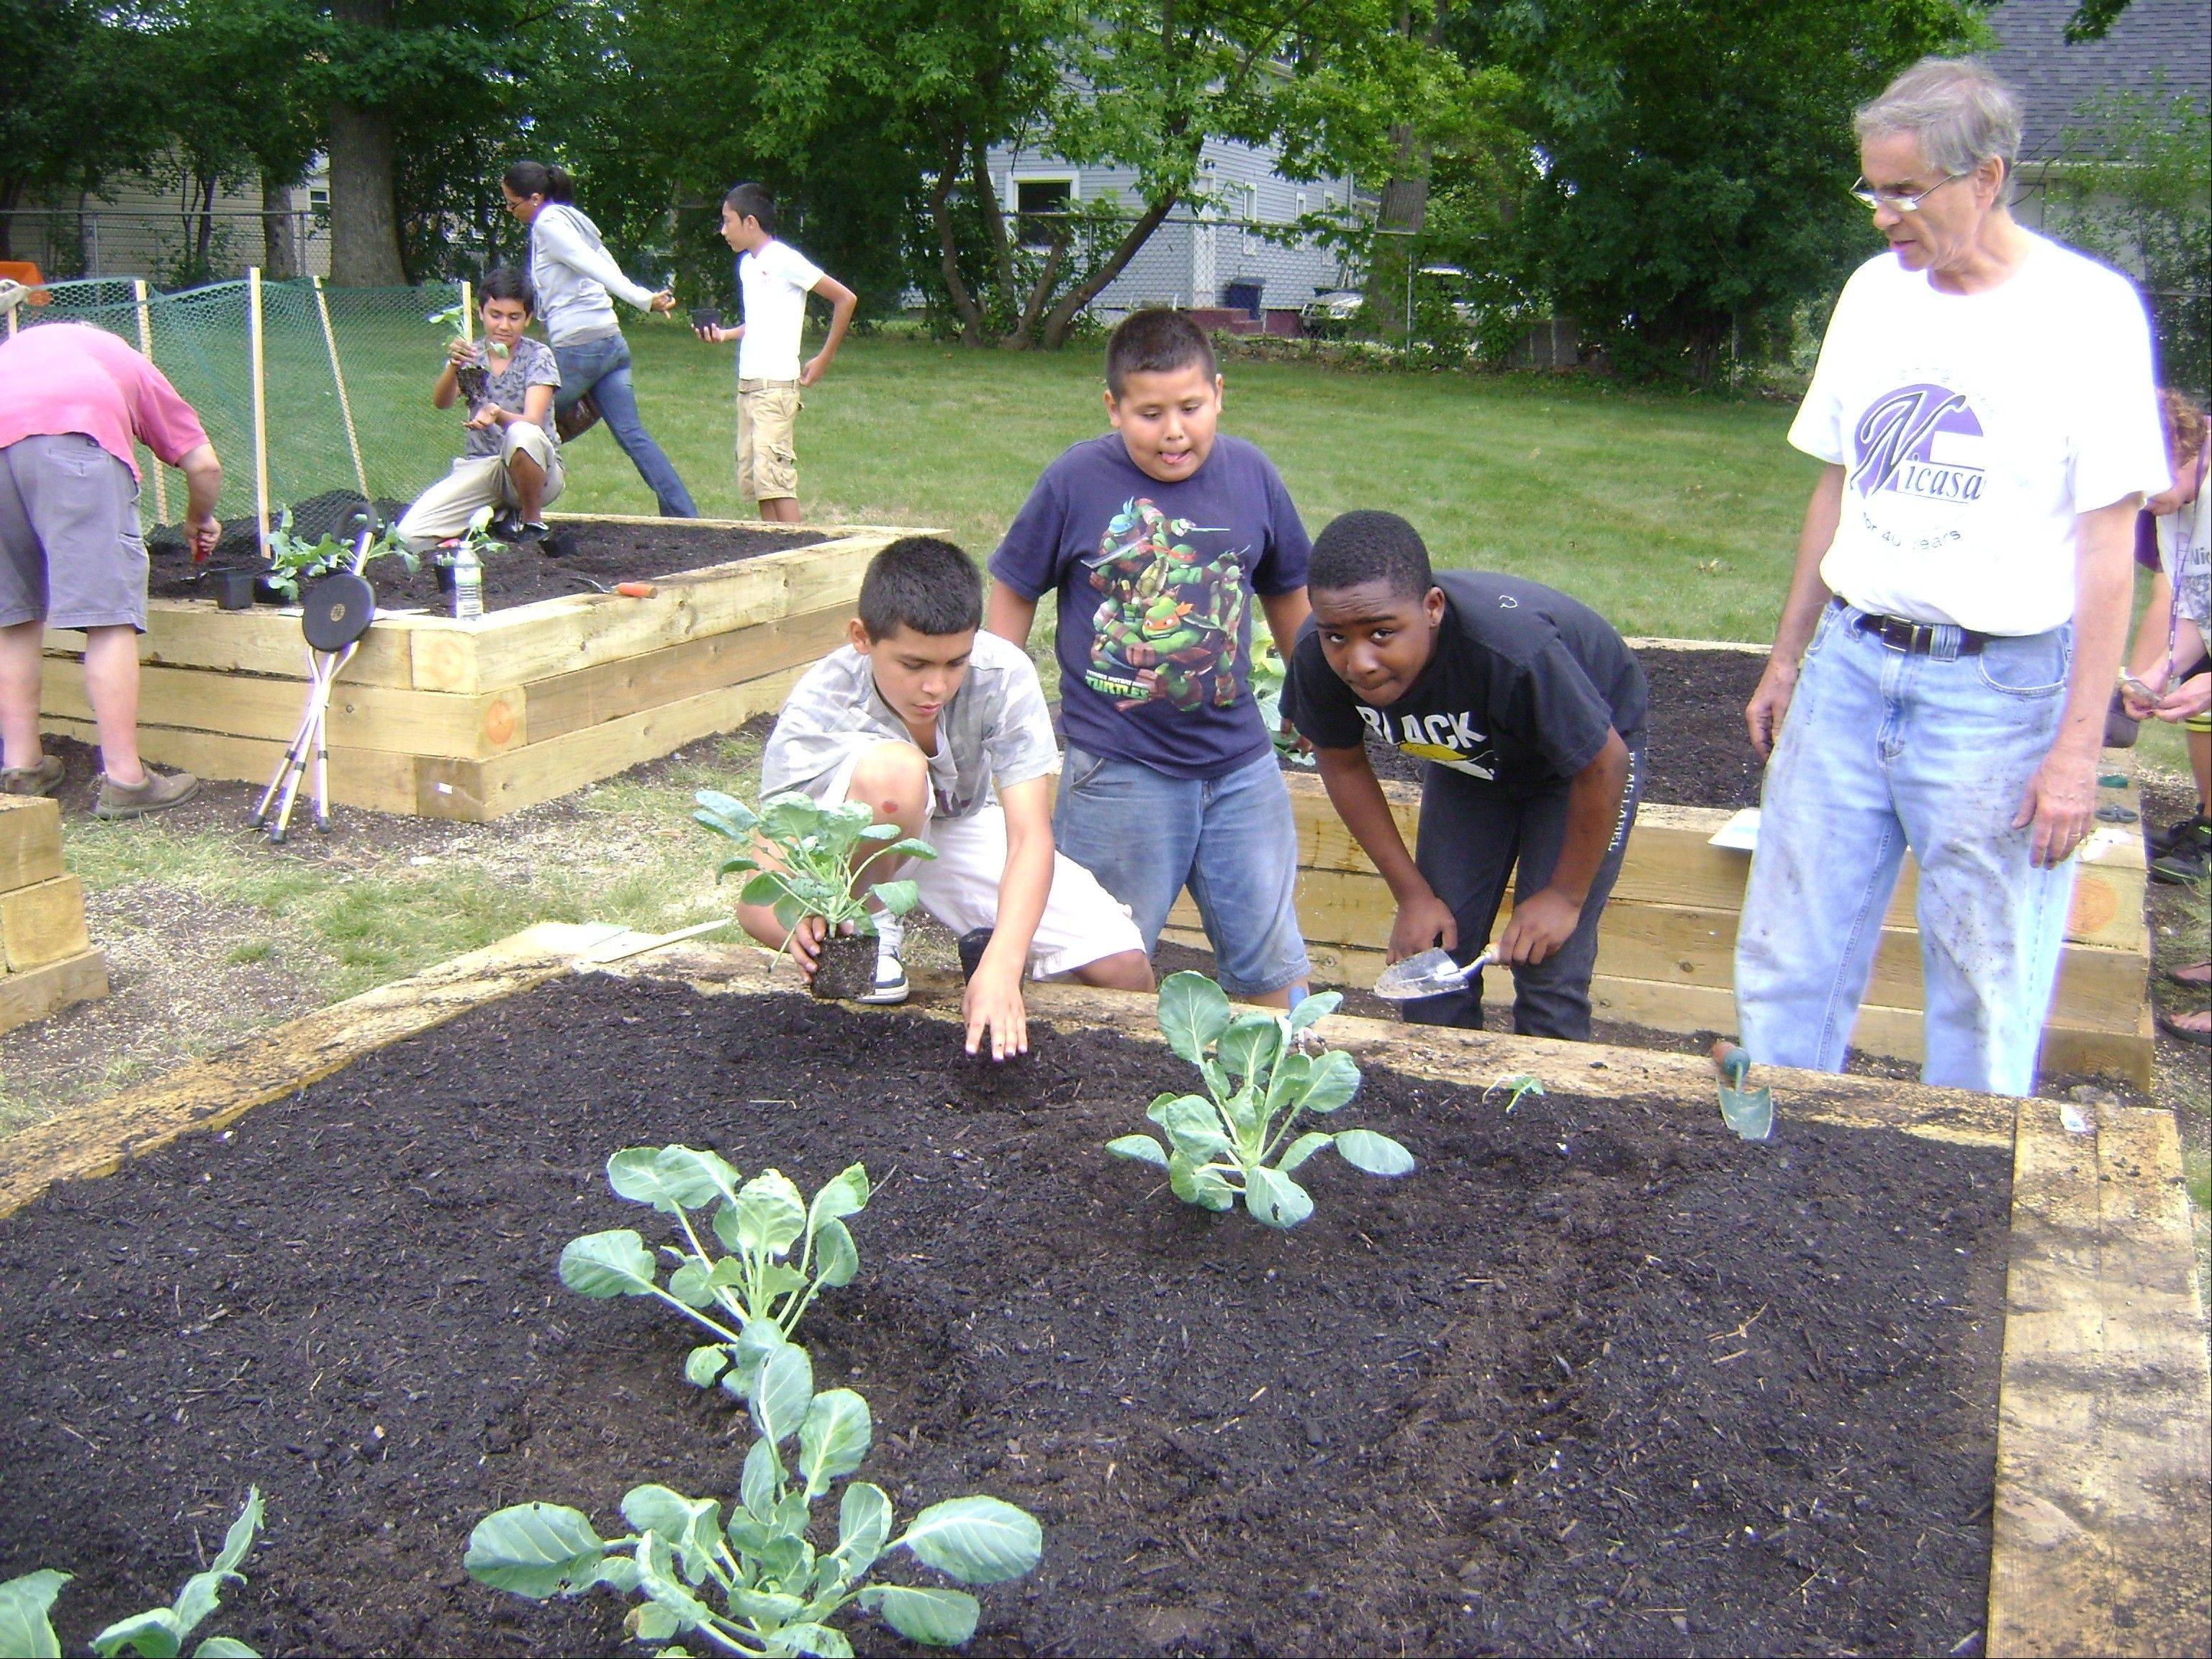 Youth from Nicasa's Teen REACH After School Program plant Brussels sprouts in Tricia's Garden.